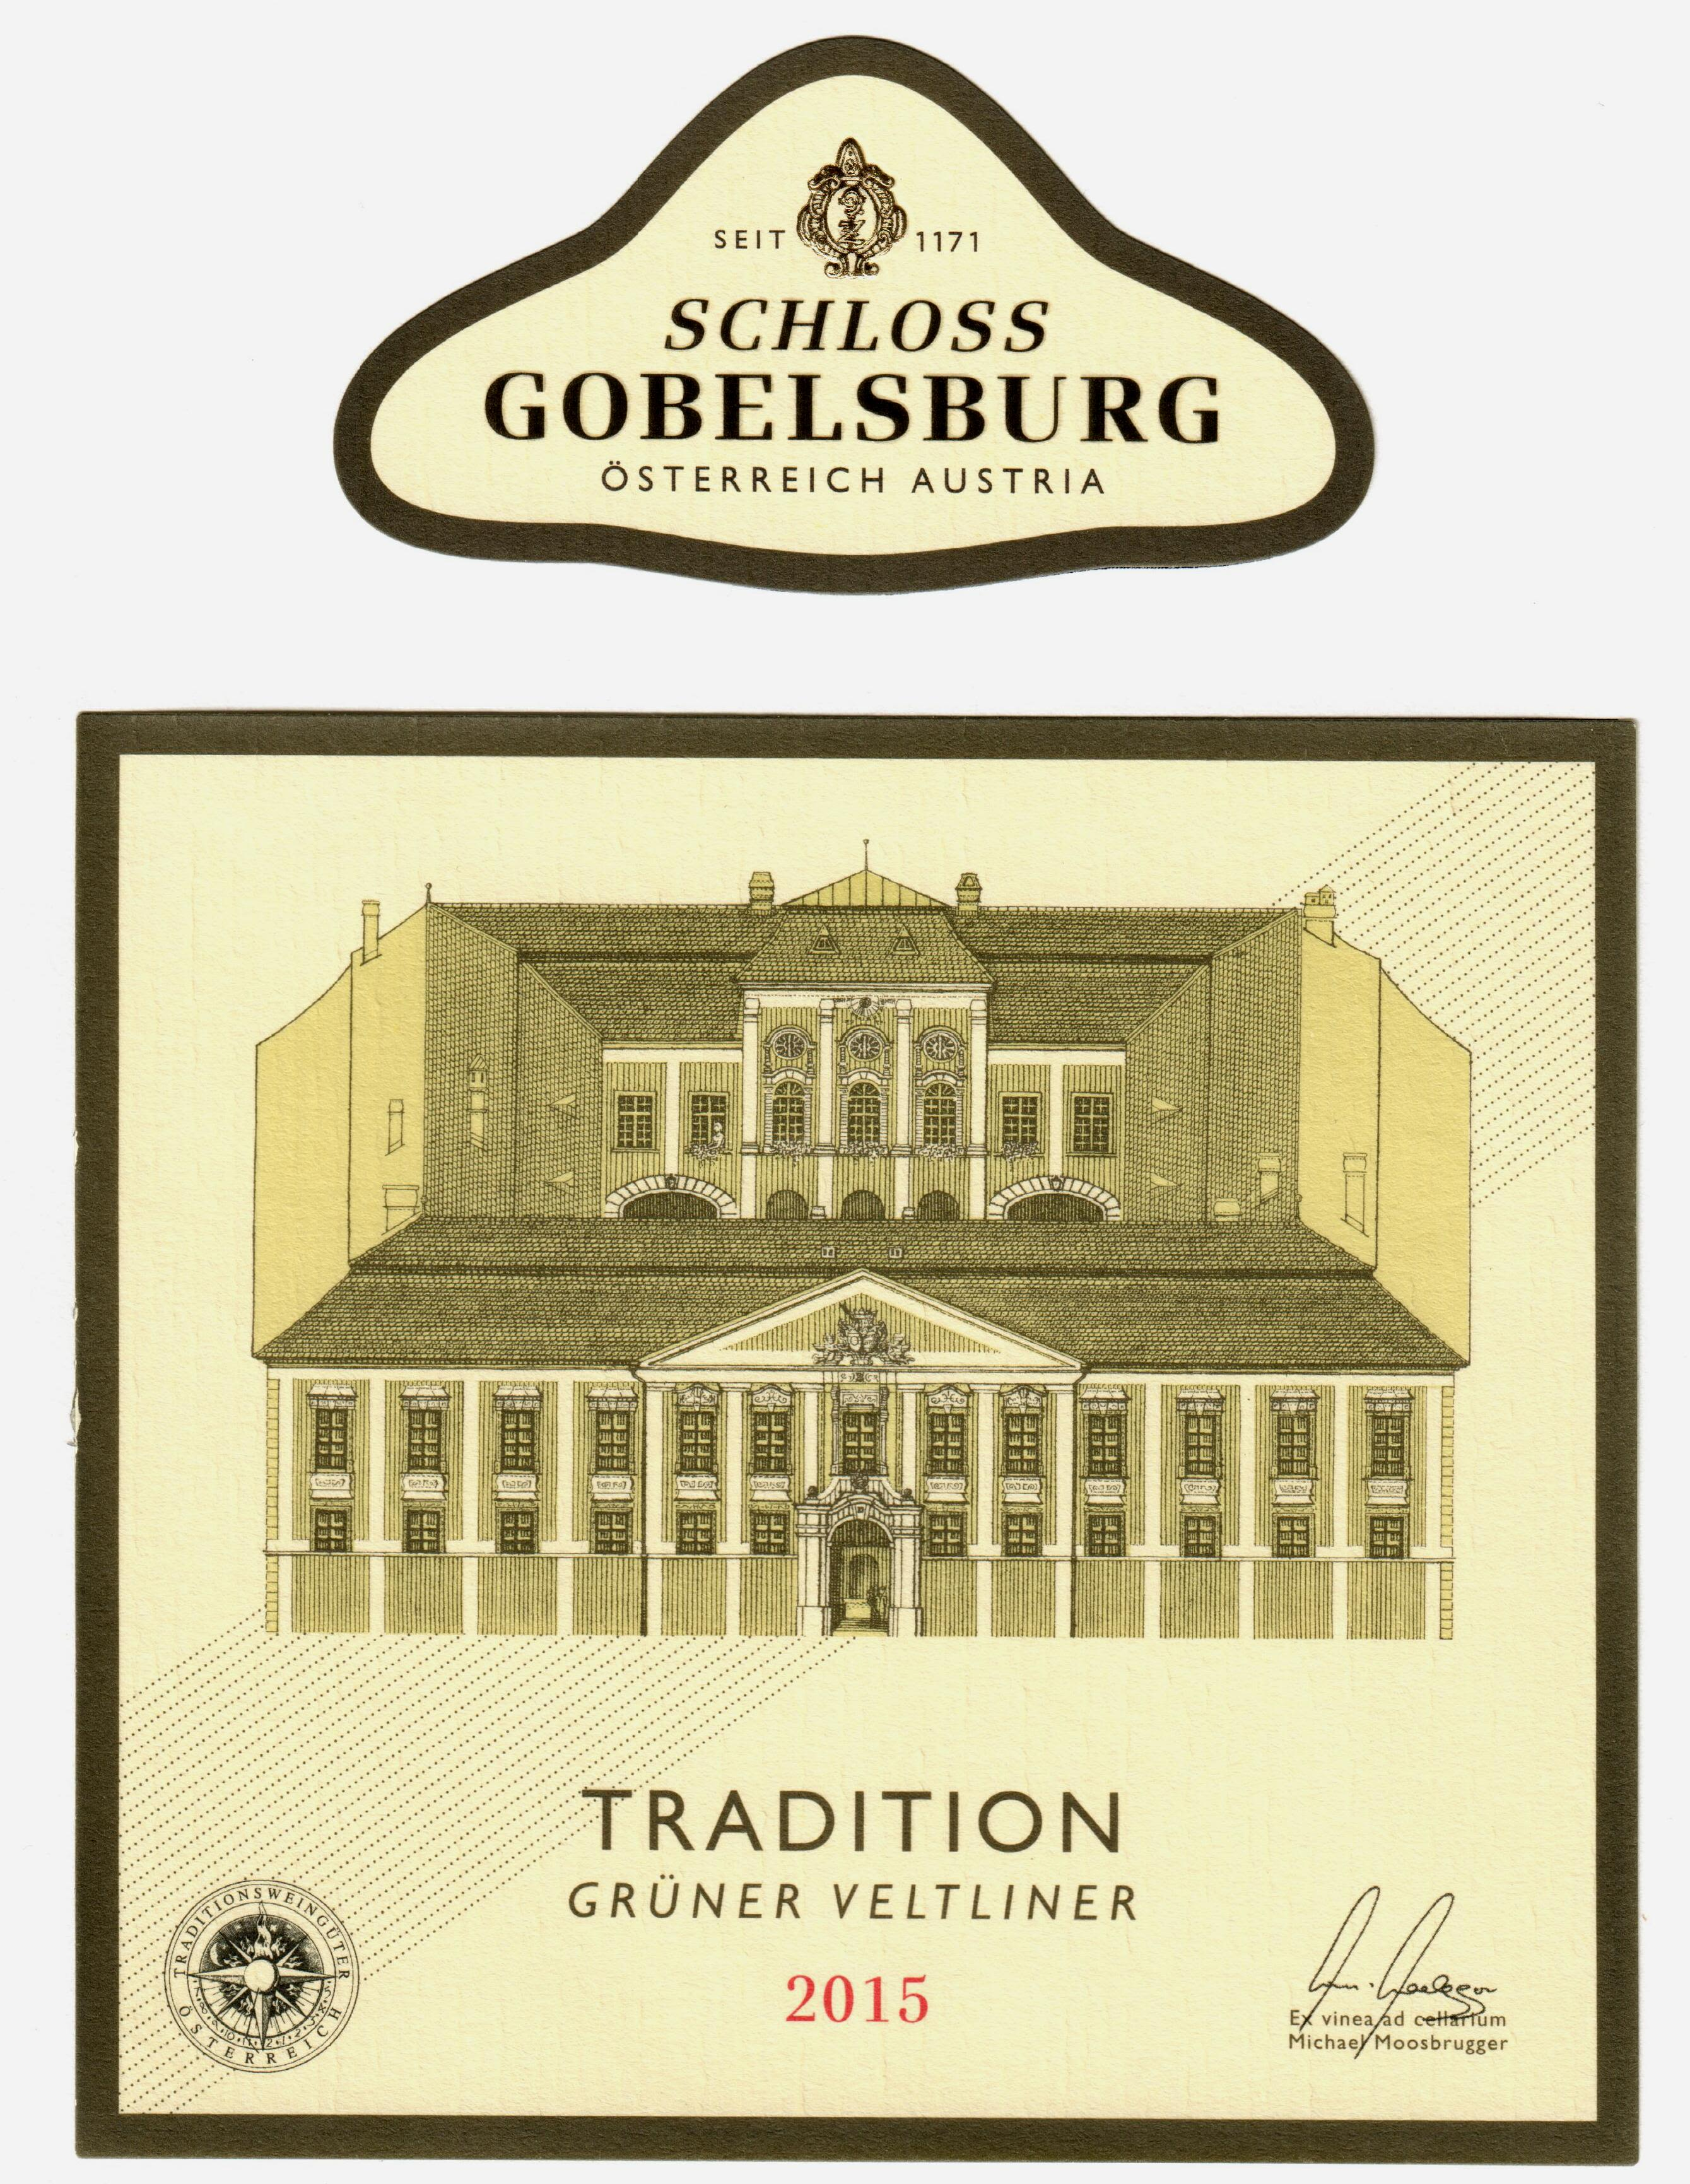 Schloss Gobelsburg Tradition Gruner Veltliner 2015  Front Label